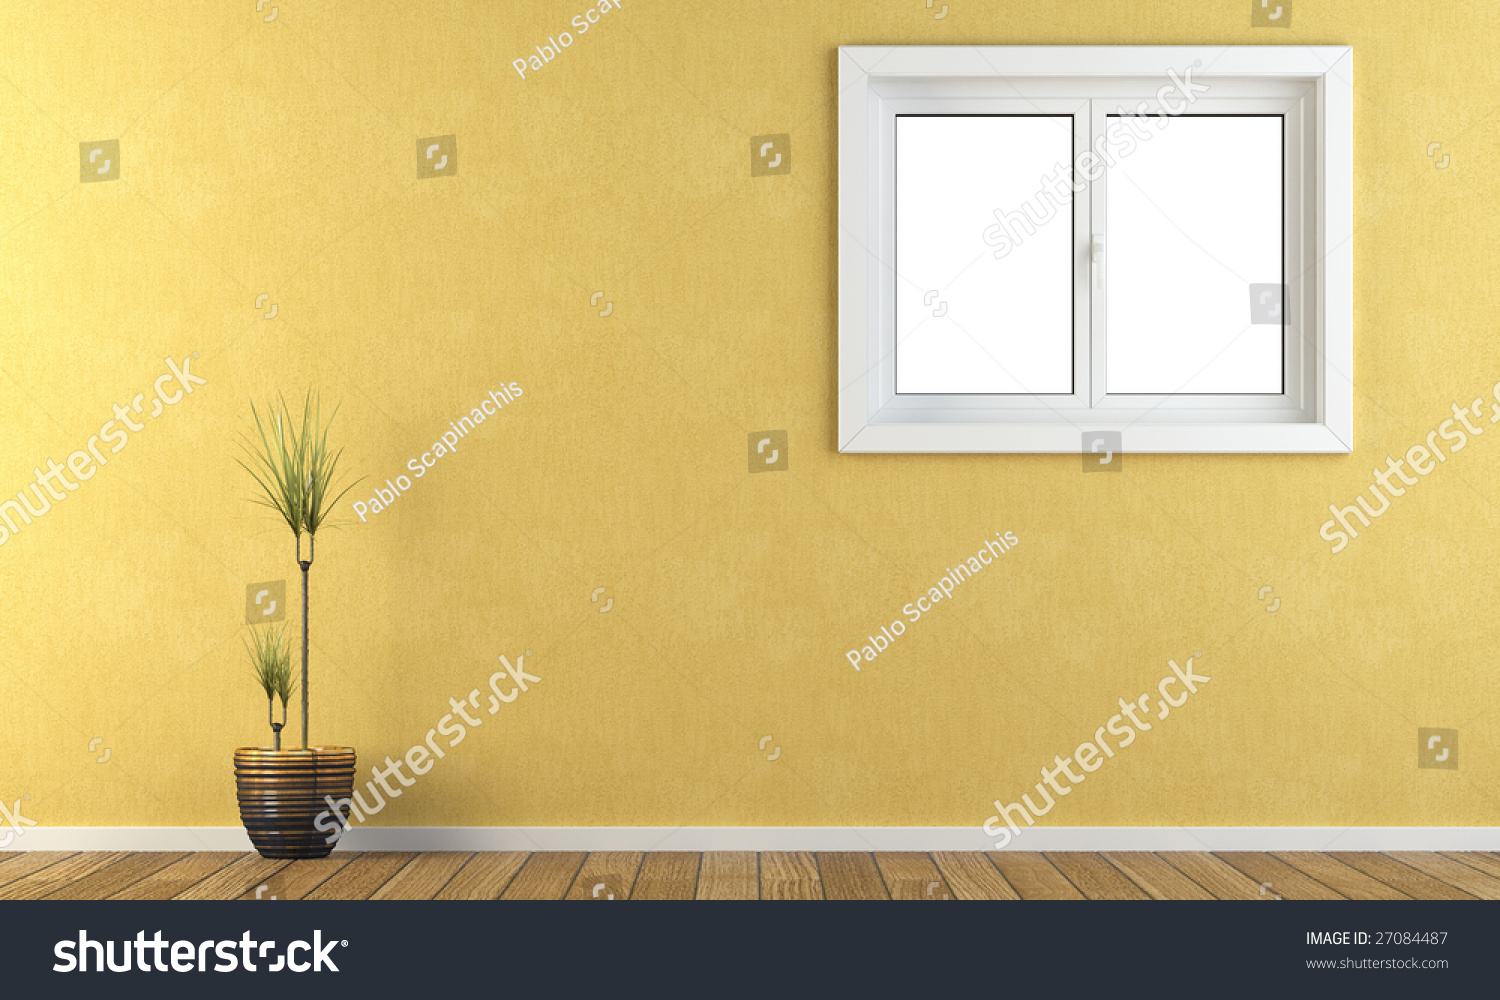 interior wall with window frosted interior yellow wall with window yellow wall window stock illustration 27084487 shutterstock